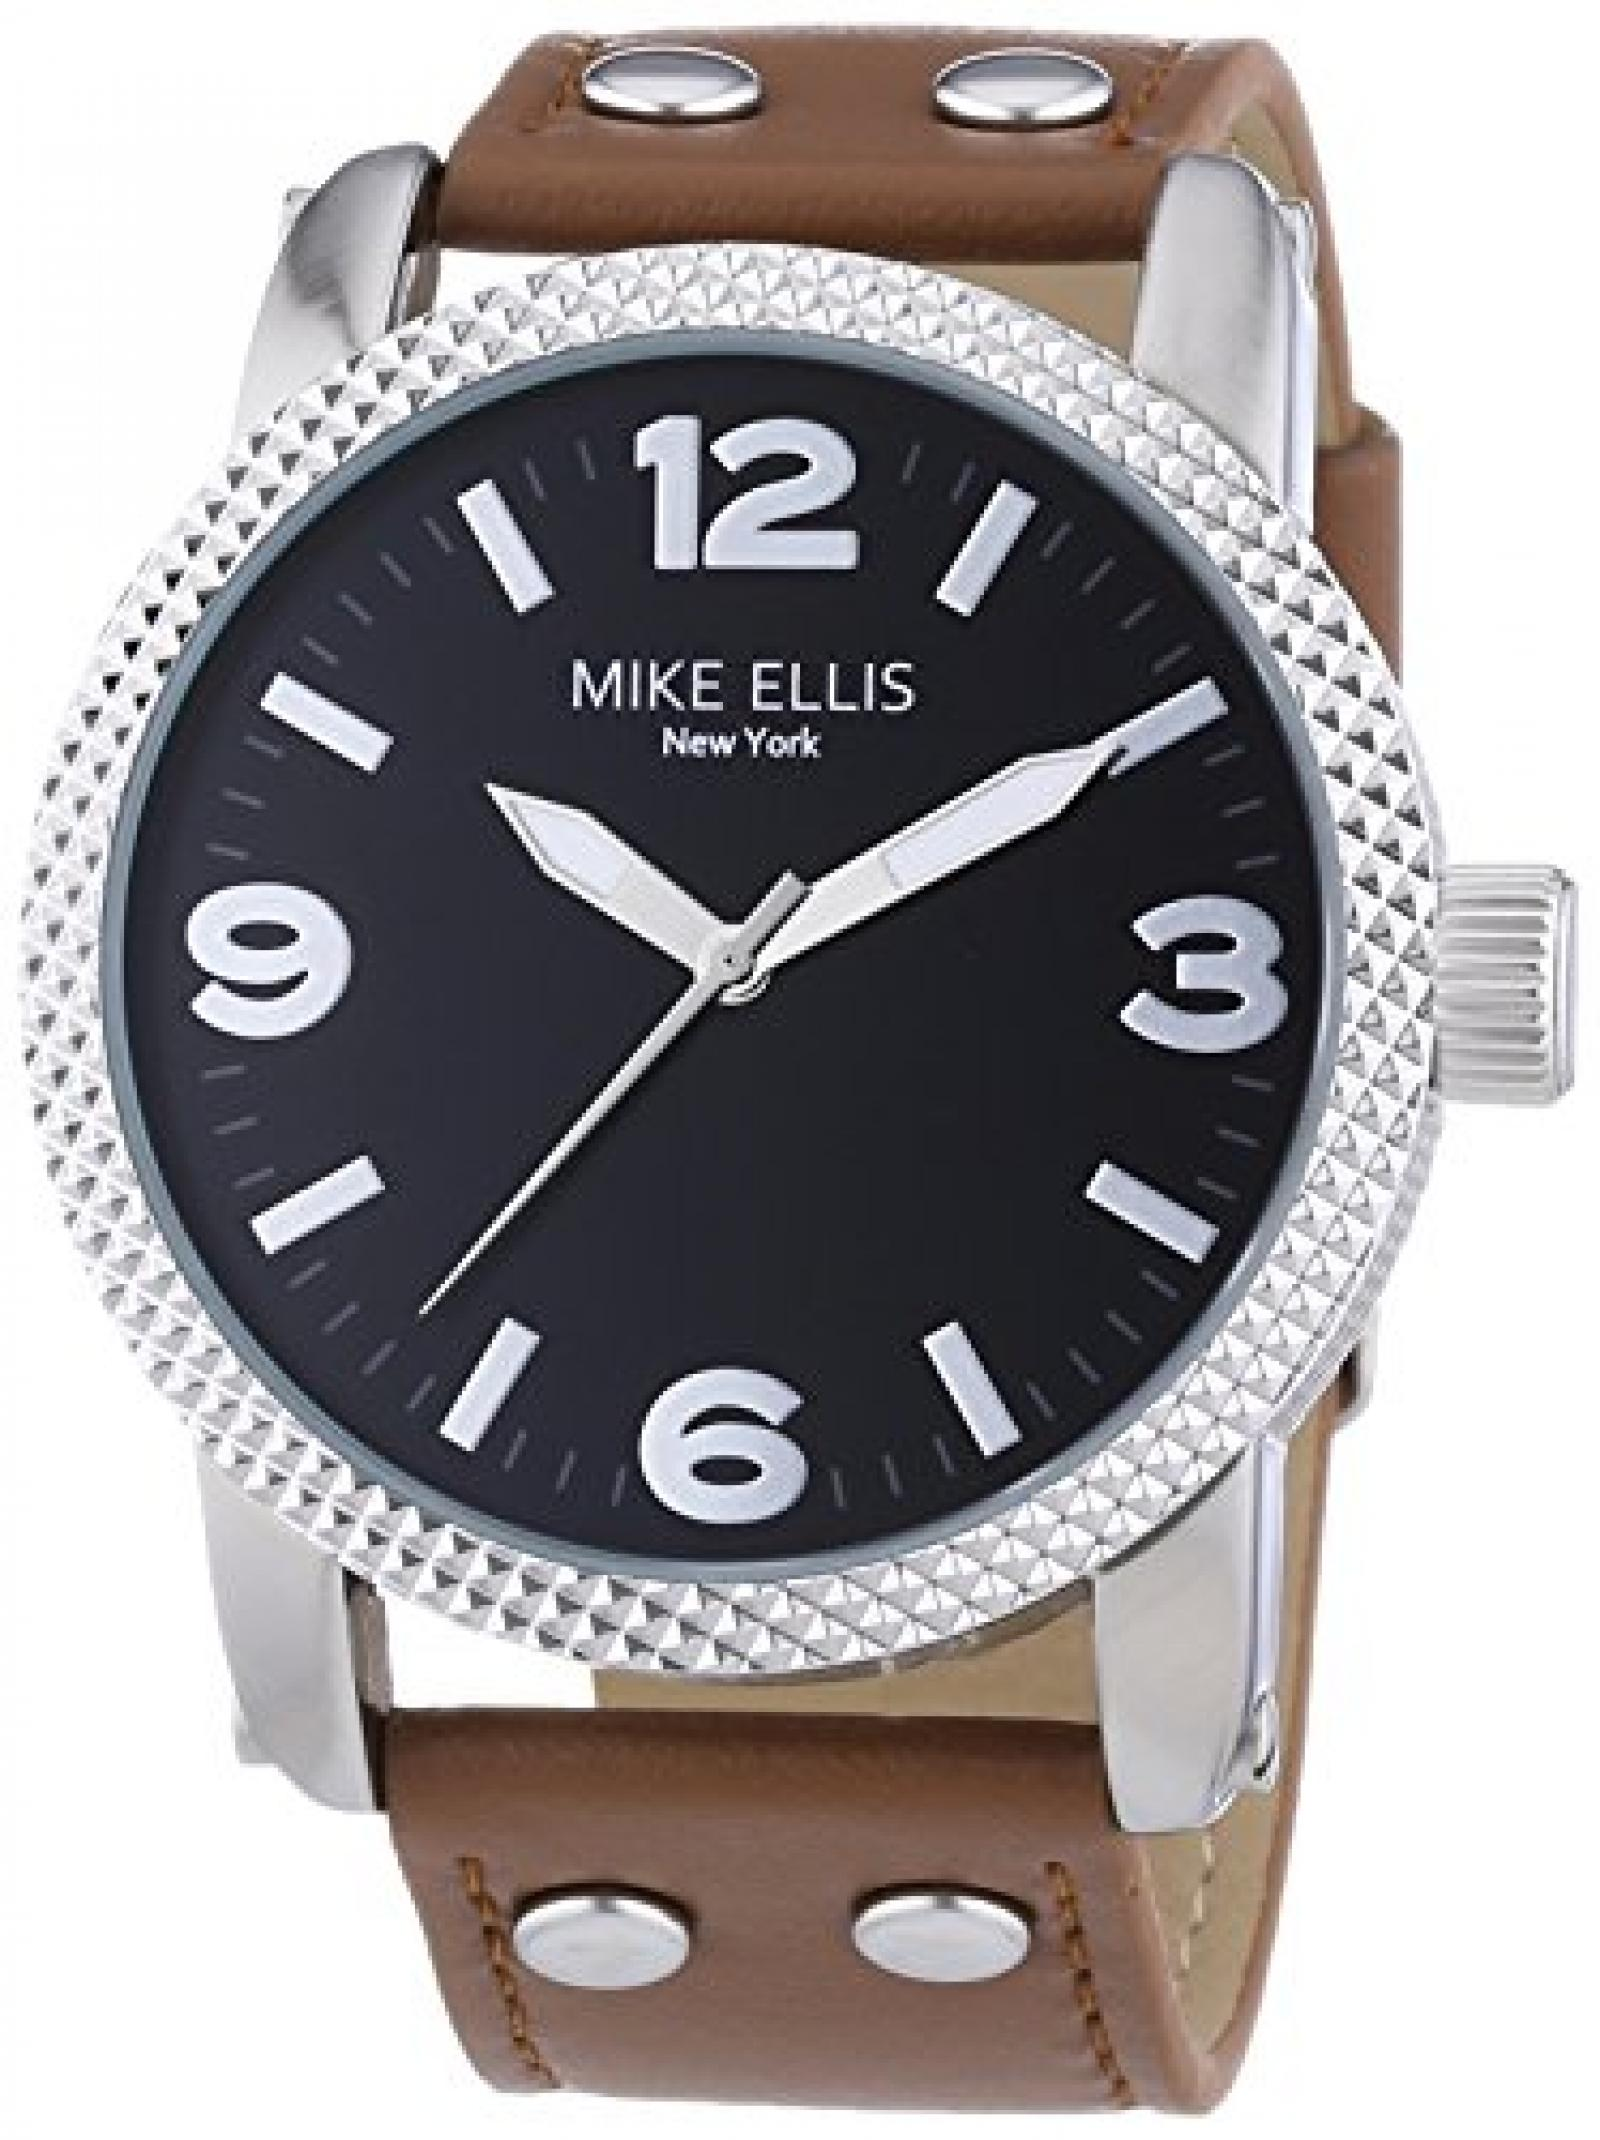 Mike Ellis New York Herren-Armbanduhr XL a:ne Analog Quarz Leder SL4316/3